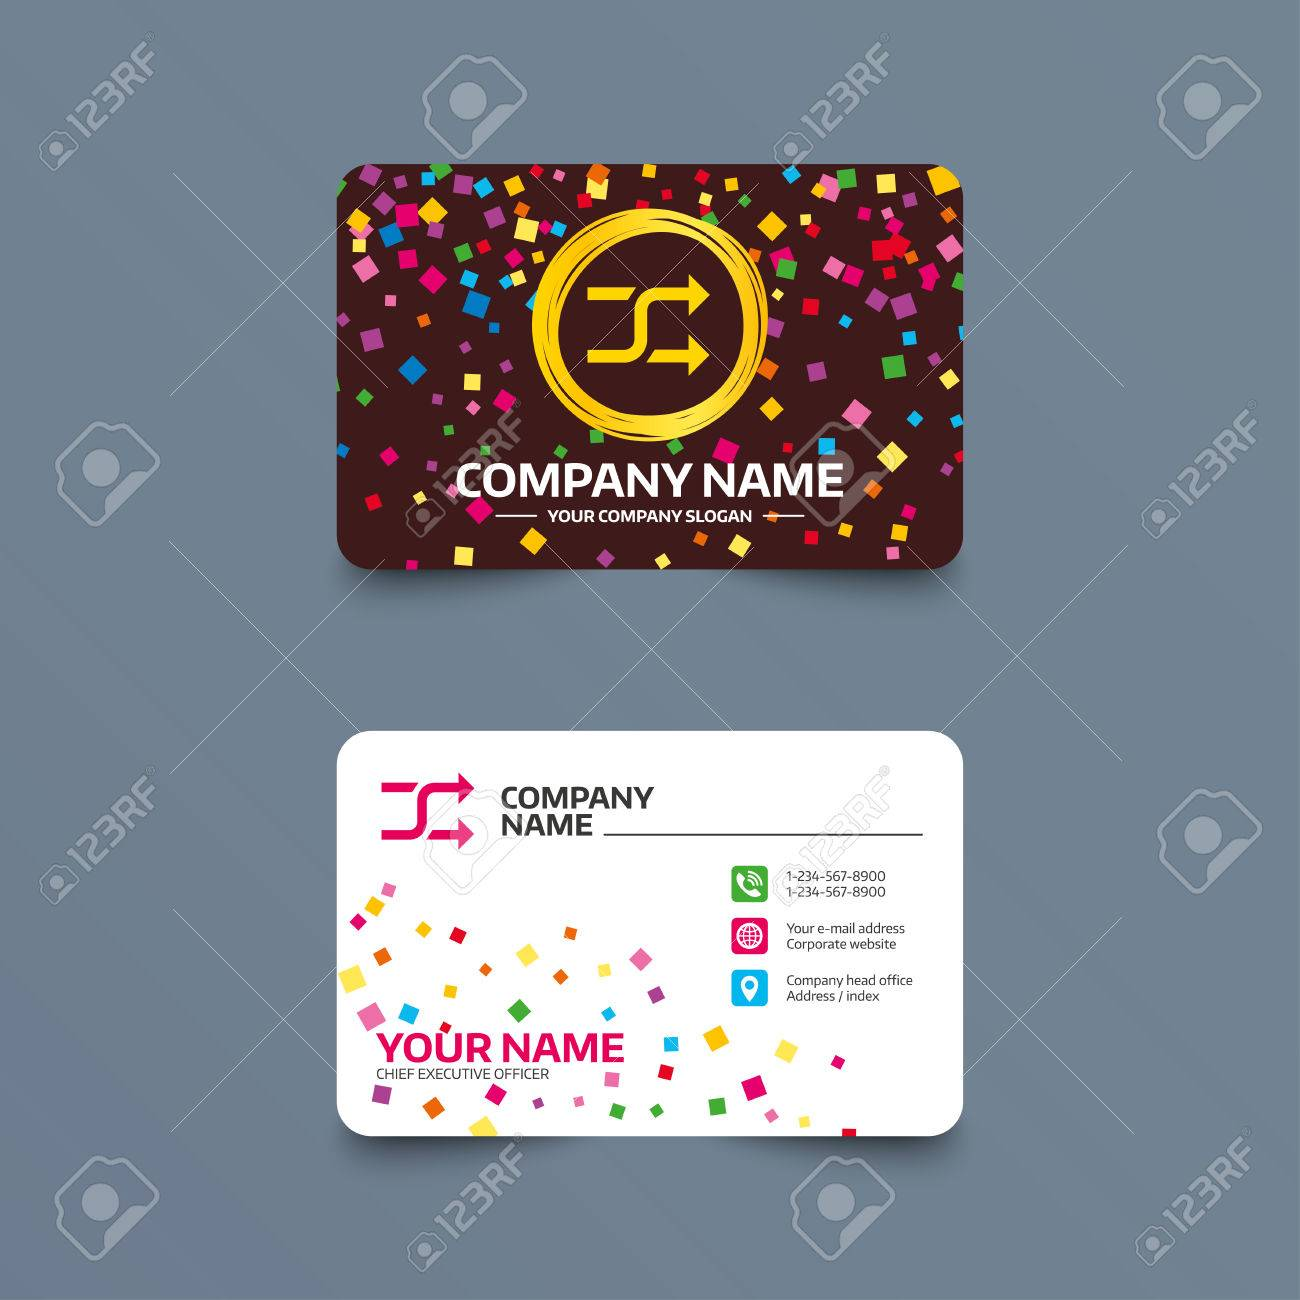 Business card template with confetti pieces  Shuffle sign icon